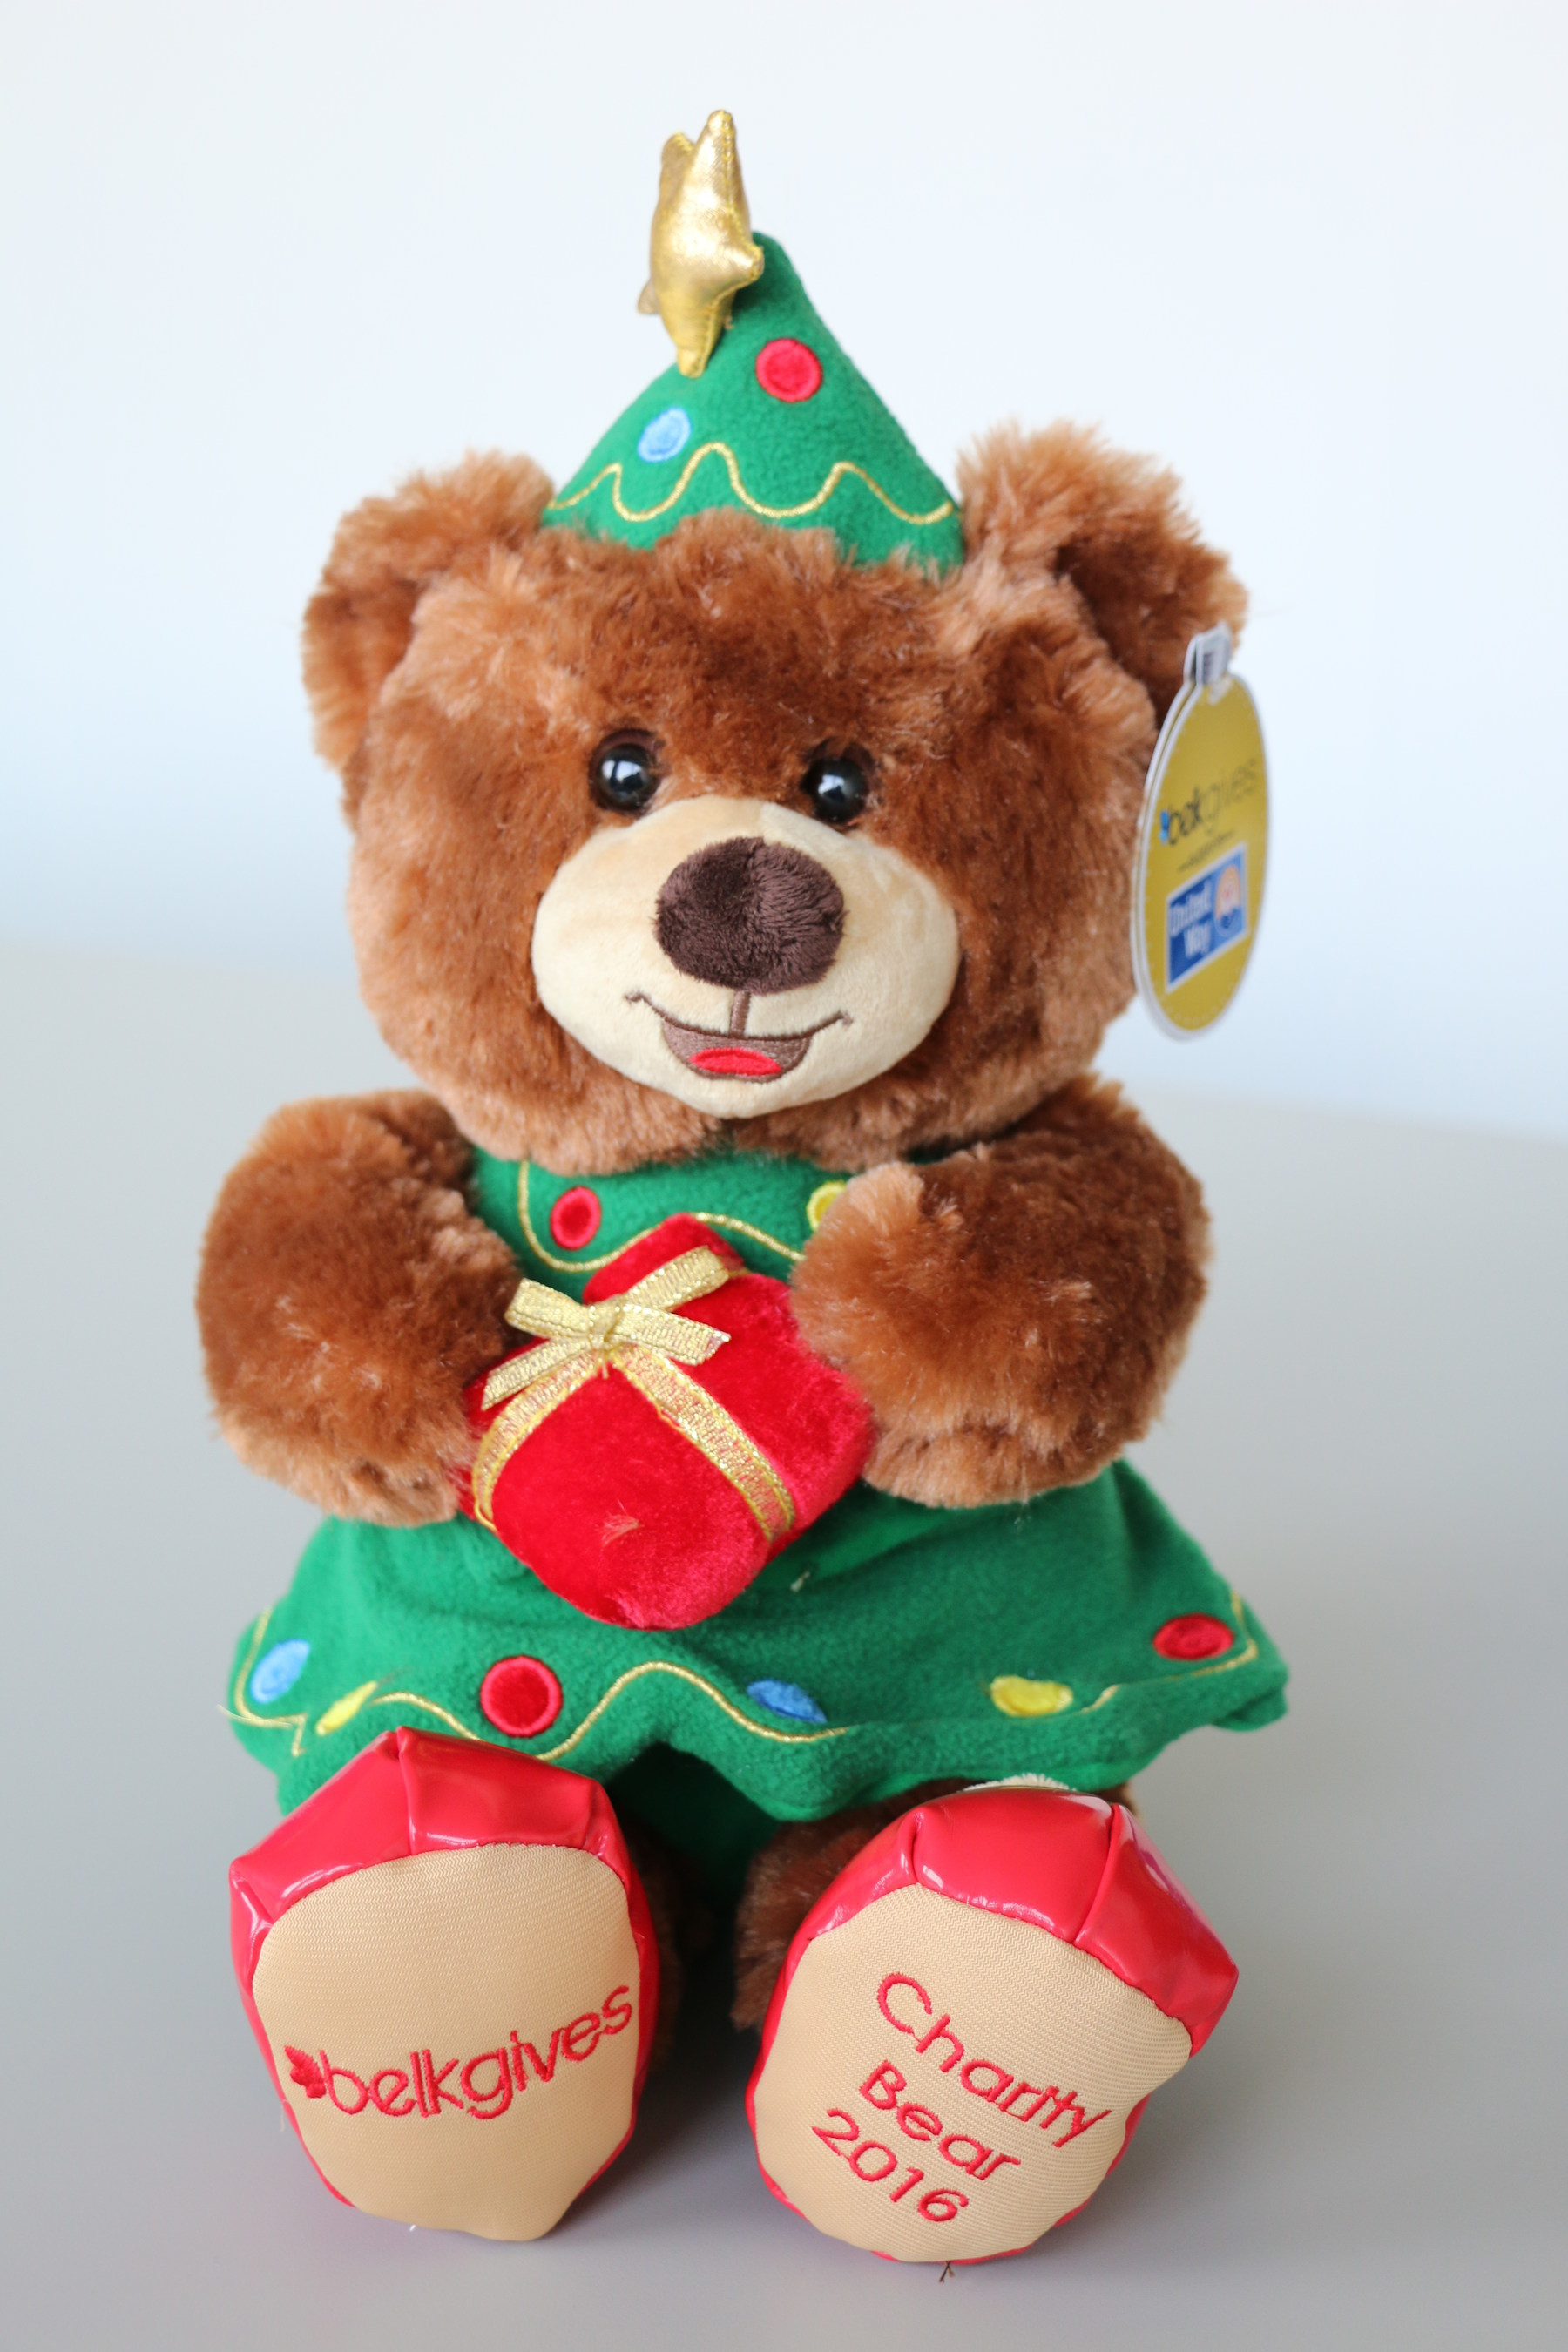 The 2016 Belk Charity Bear was designed by a 9-year-old girl at last year's Belk SantaFest event. Charity Bear is available on belk.com and in most stores.